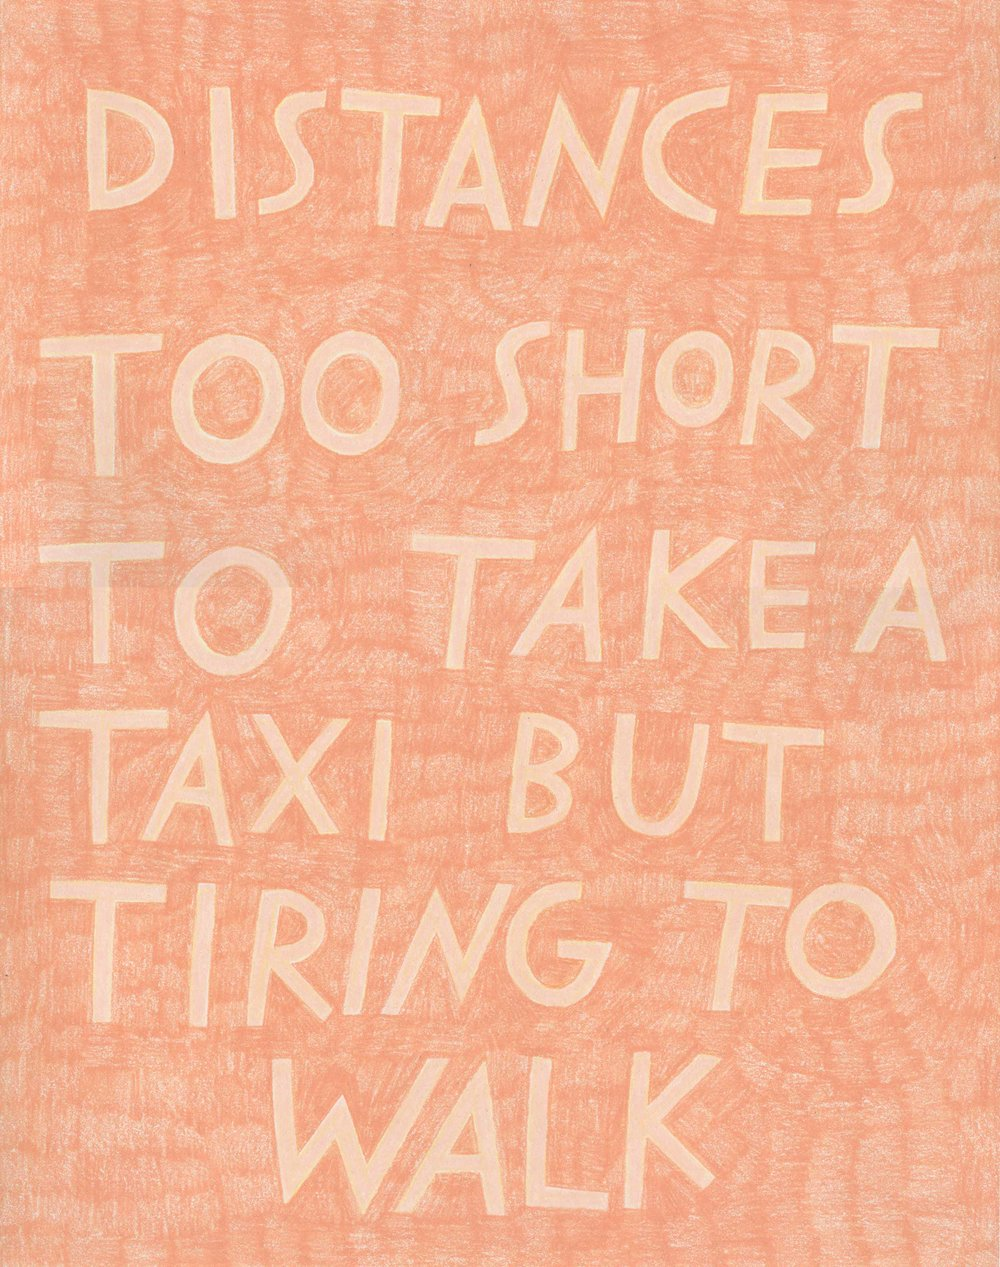 """Distances to short to take a taxi but tiring to walk,"" in light salmon pink on dark salmon pink."